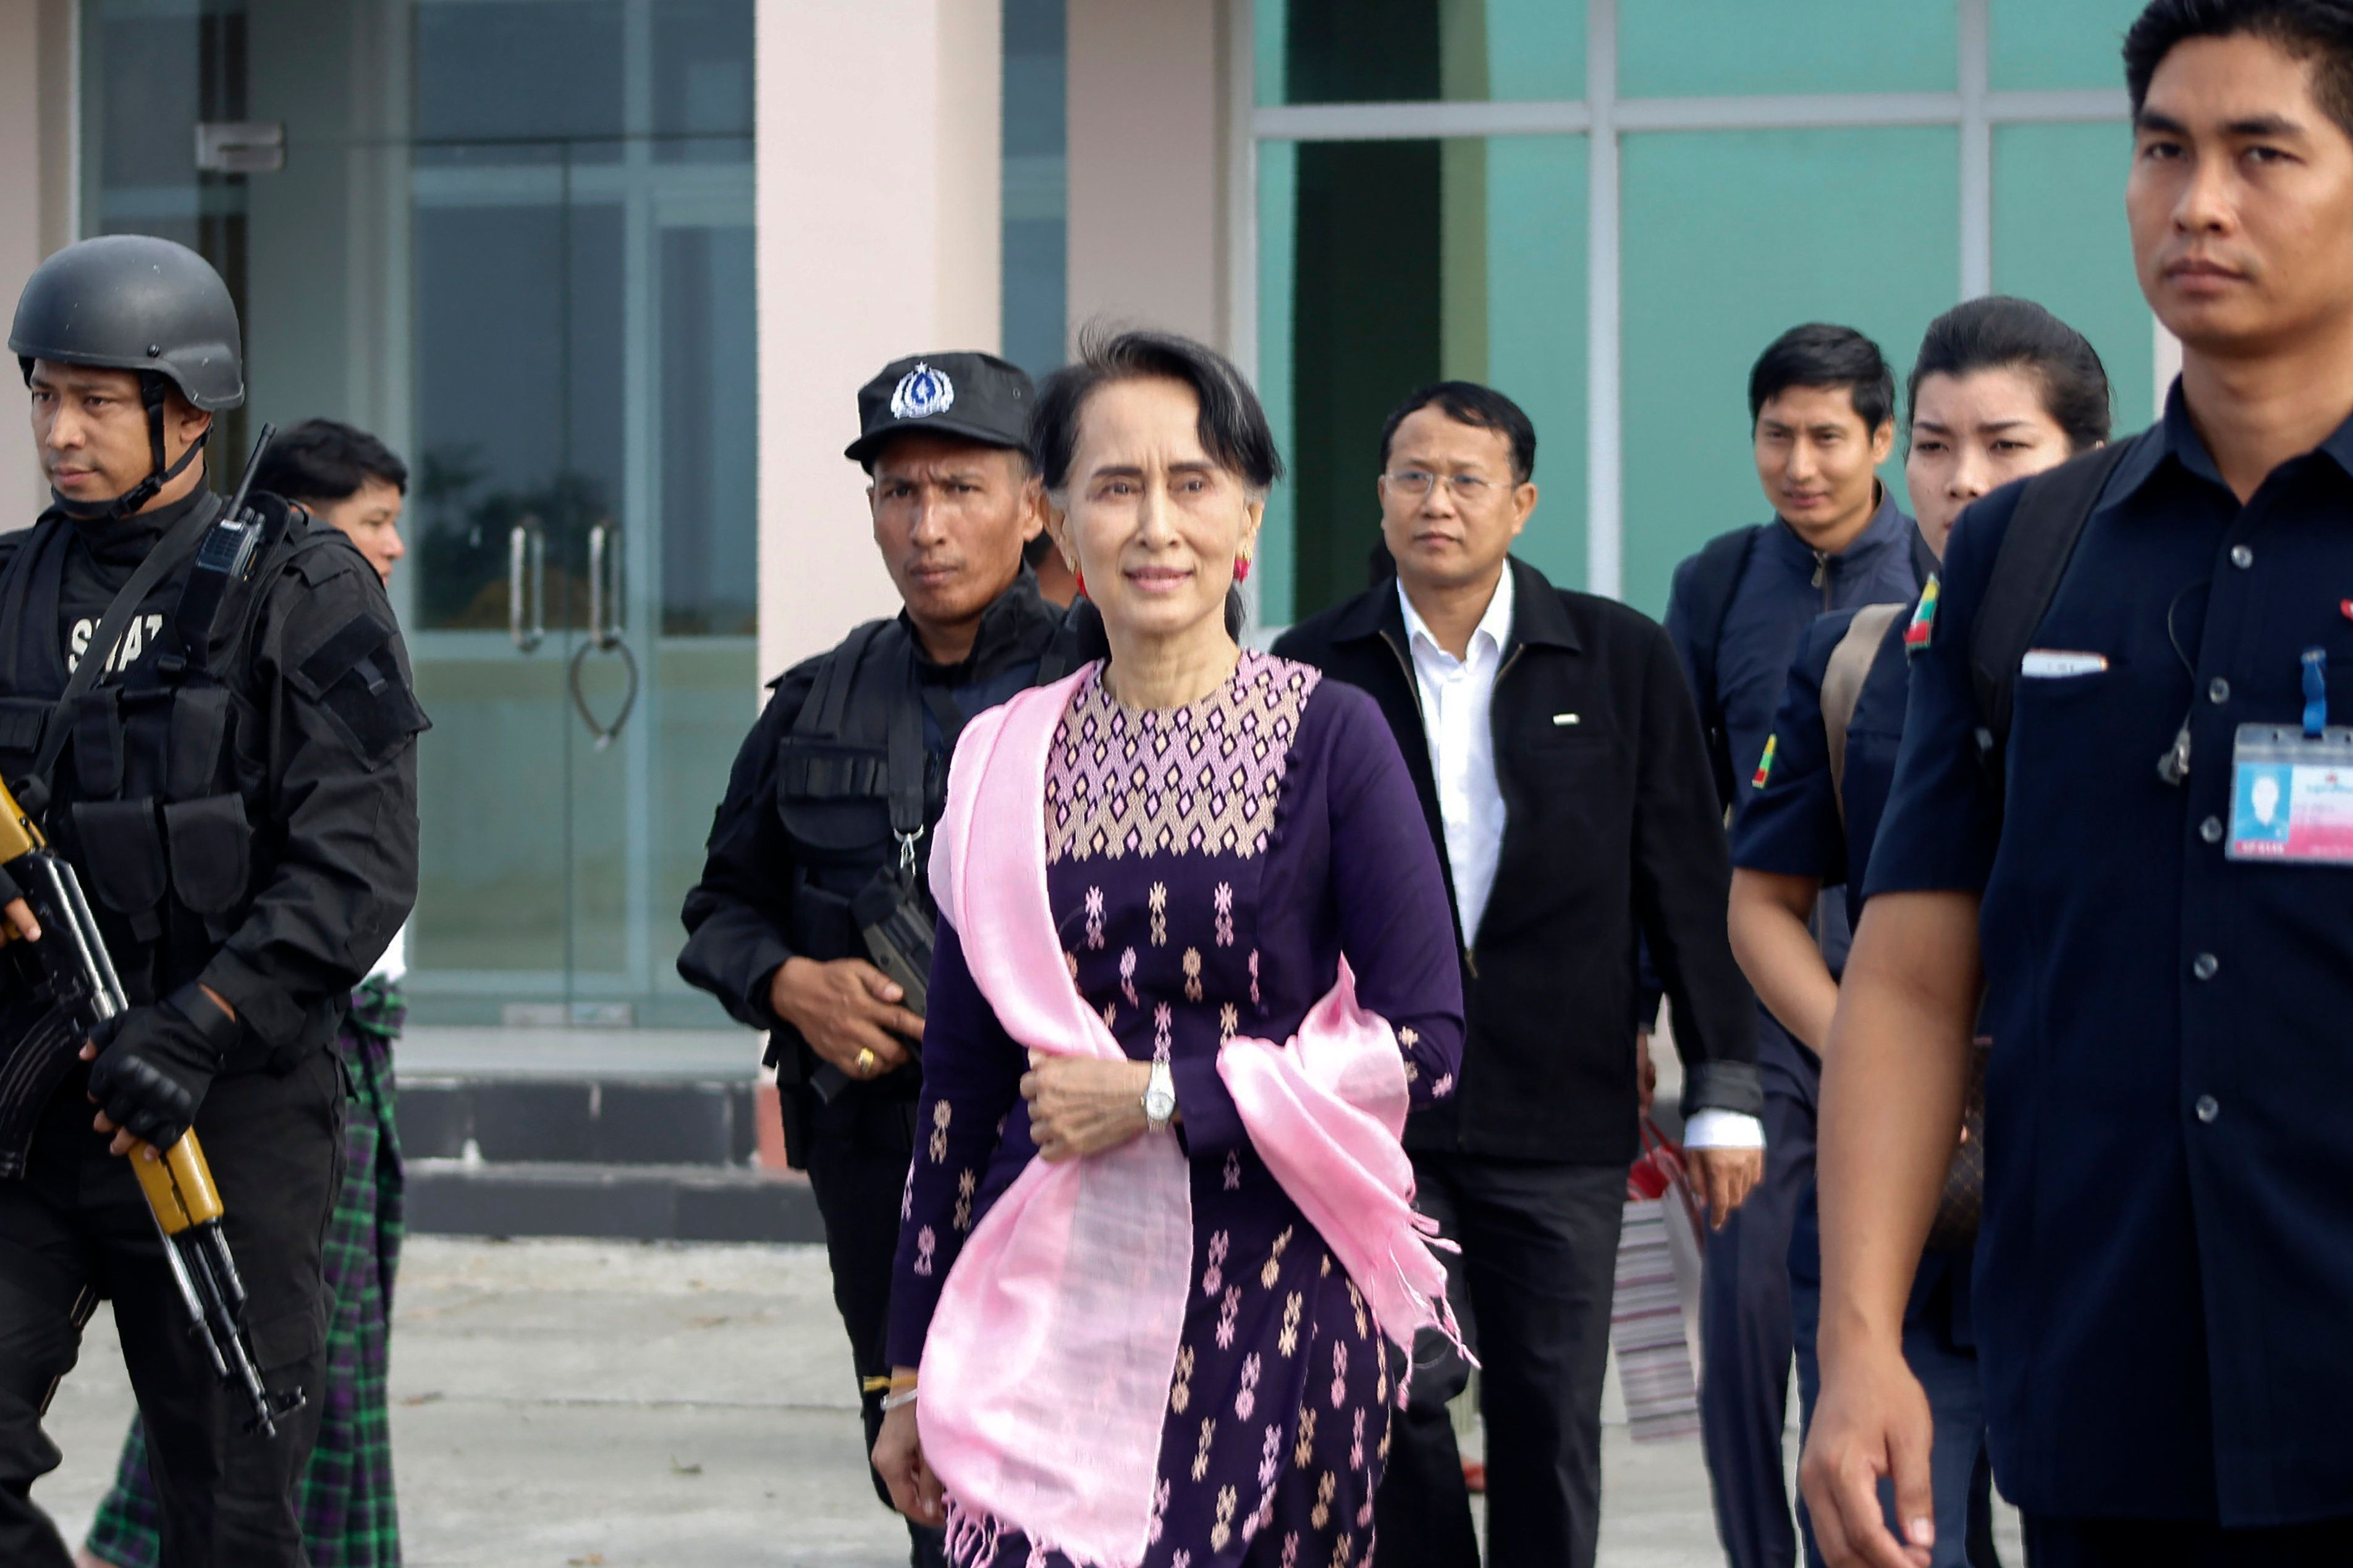 Myanmar State Counselor Aung San Suu Kyi (C) arrives in Sittwe airport for an unannounced visit to restive Rakhine state on November 2, 2017.  Myanmar's leader Aung San Suu Kyi arrived on her first visit to conflict-battered northern Rakhine State on November 2, an official said, an unannounced trip to an area that has seen most of its Rohingya Muslim population forced out by an army campaign. / AFP PHOTO / STR        (Photo credit should read STR/AFP/Getty Images)